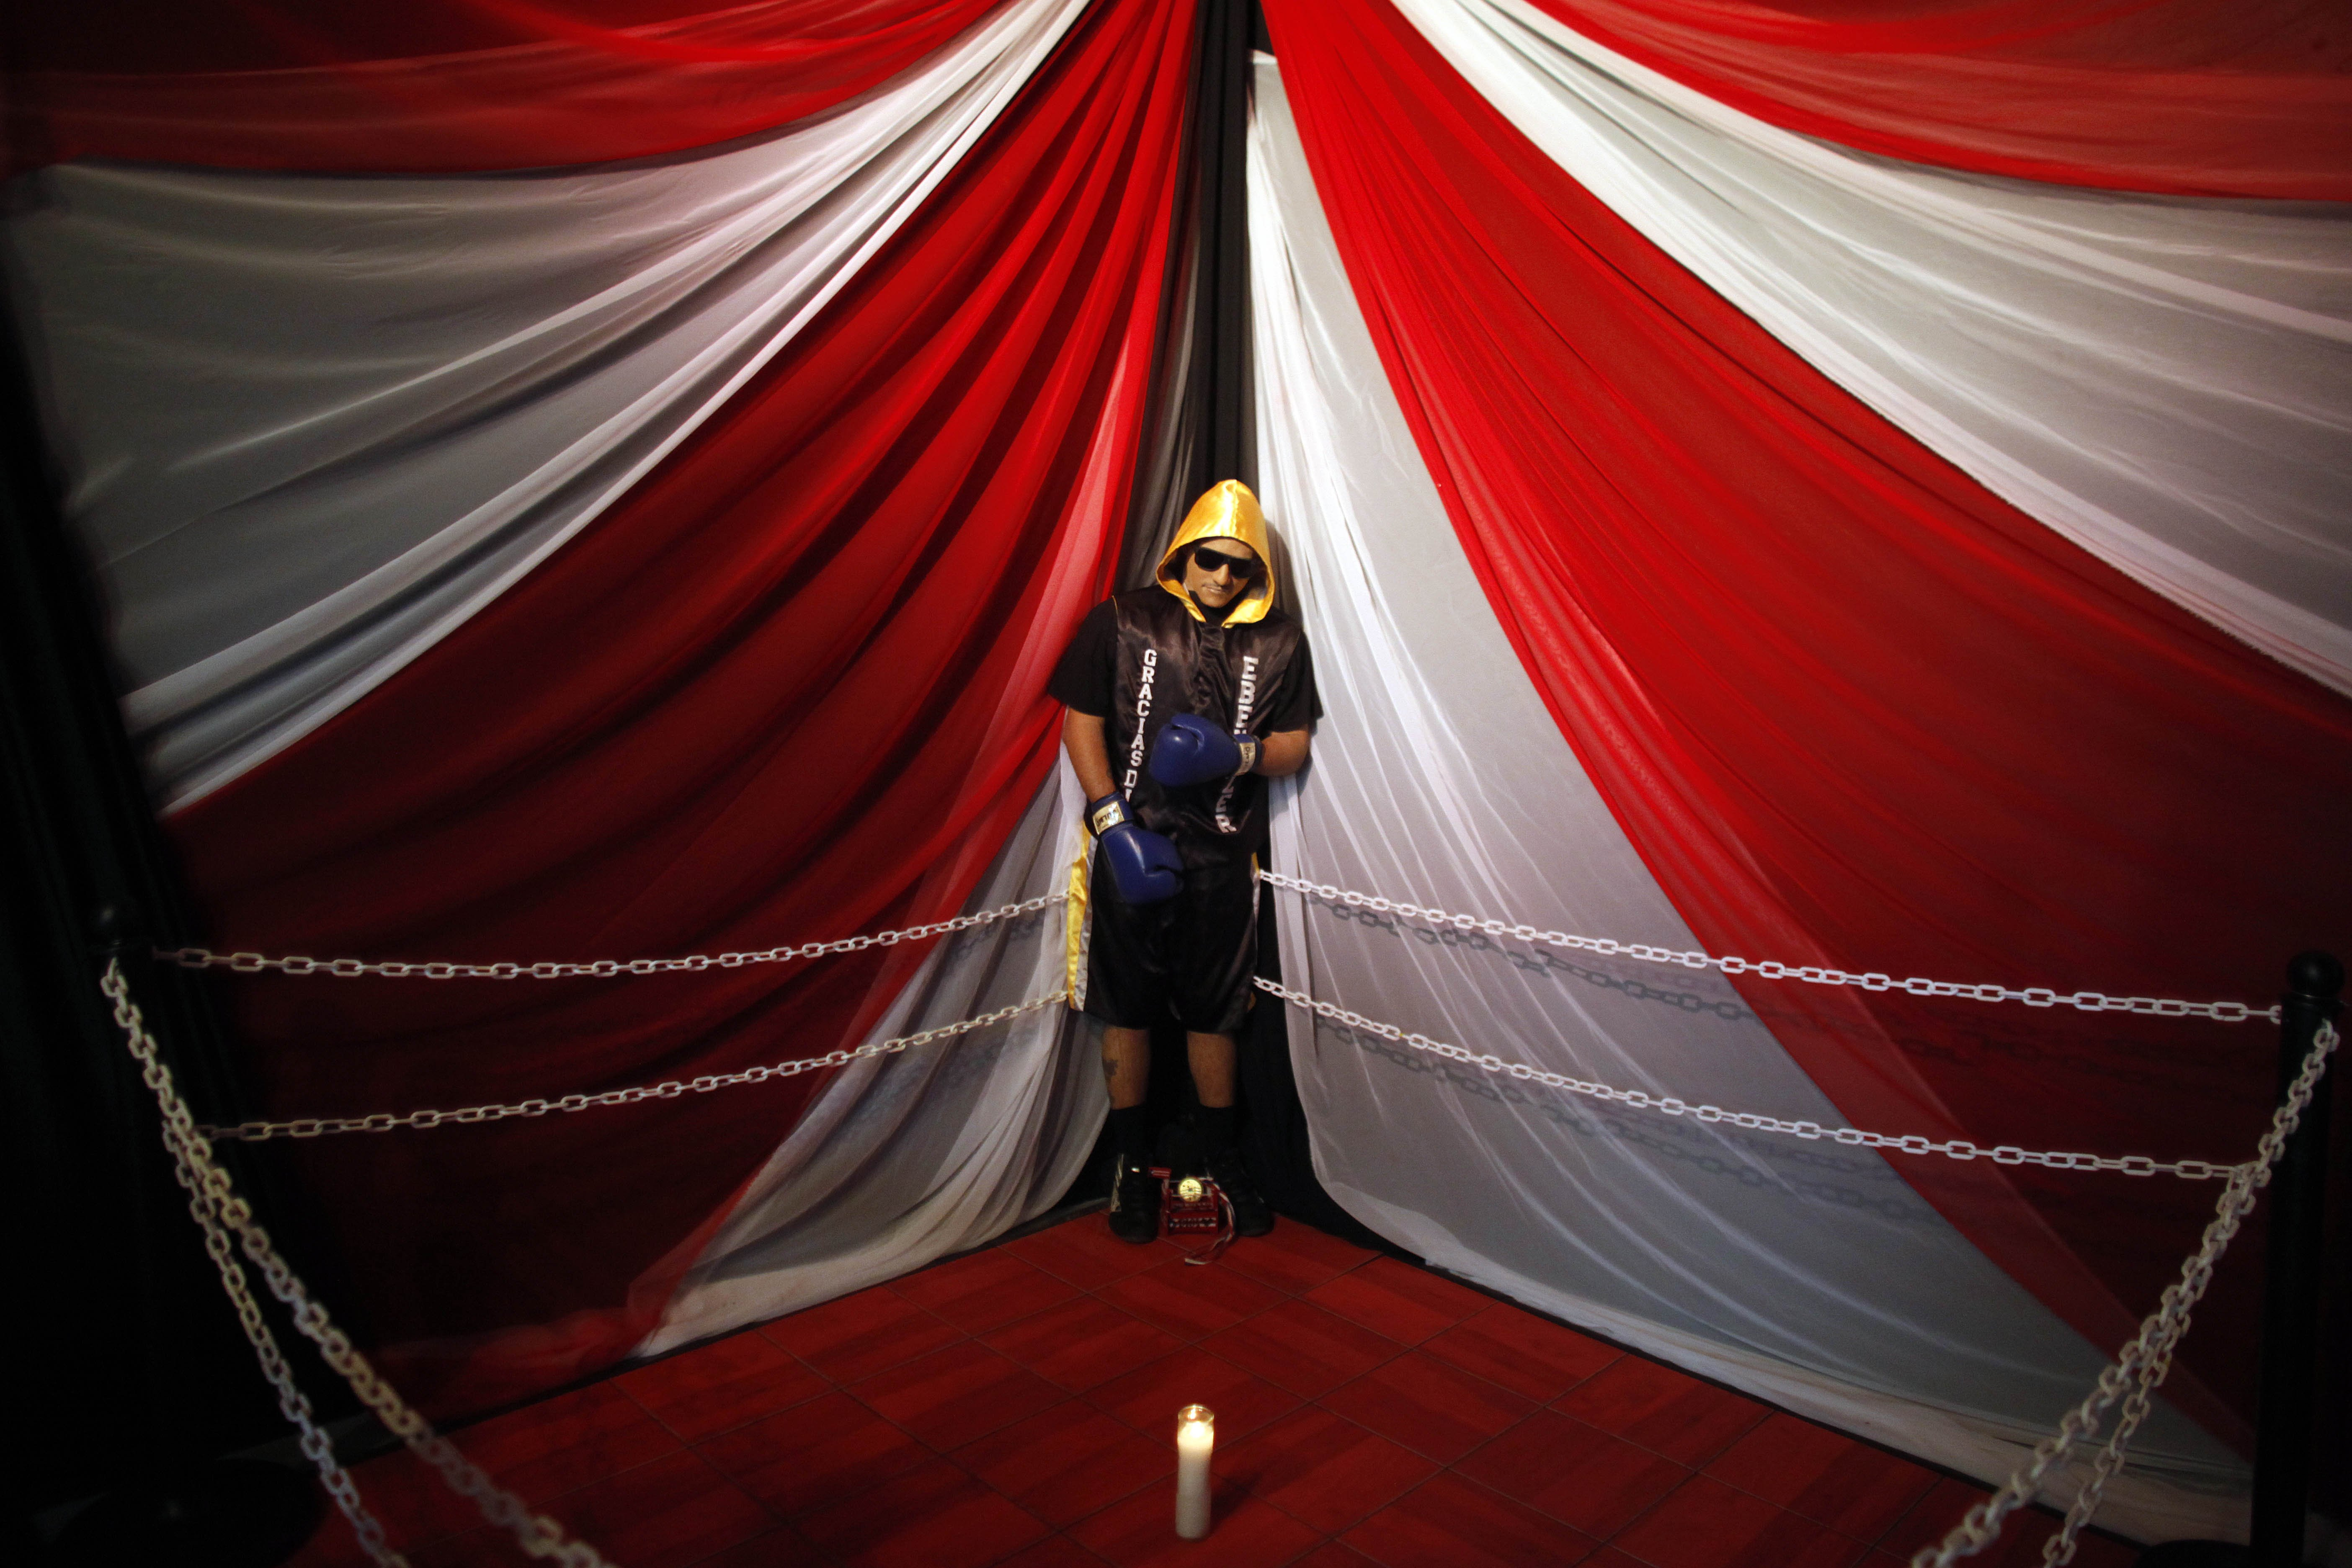 The body of boxer Christopher Rivera, who was shot to death on Sunday, is propped up in a fake boxing ring during his wake at the community recreation center within the public housing project where he lived in San Juan, Puerto Rico,  Jan. 31, 2014.